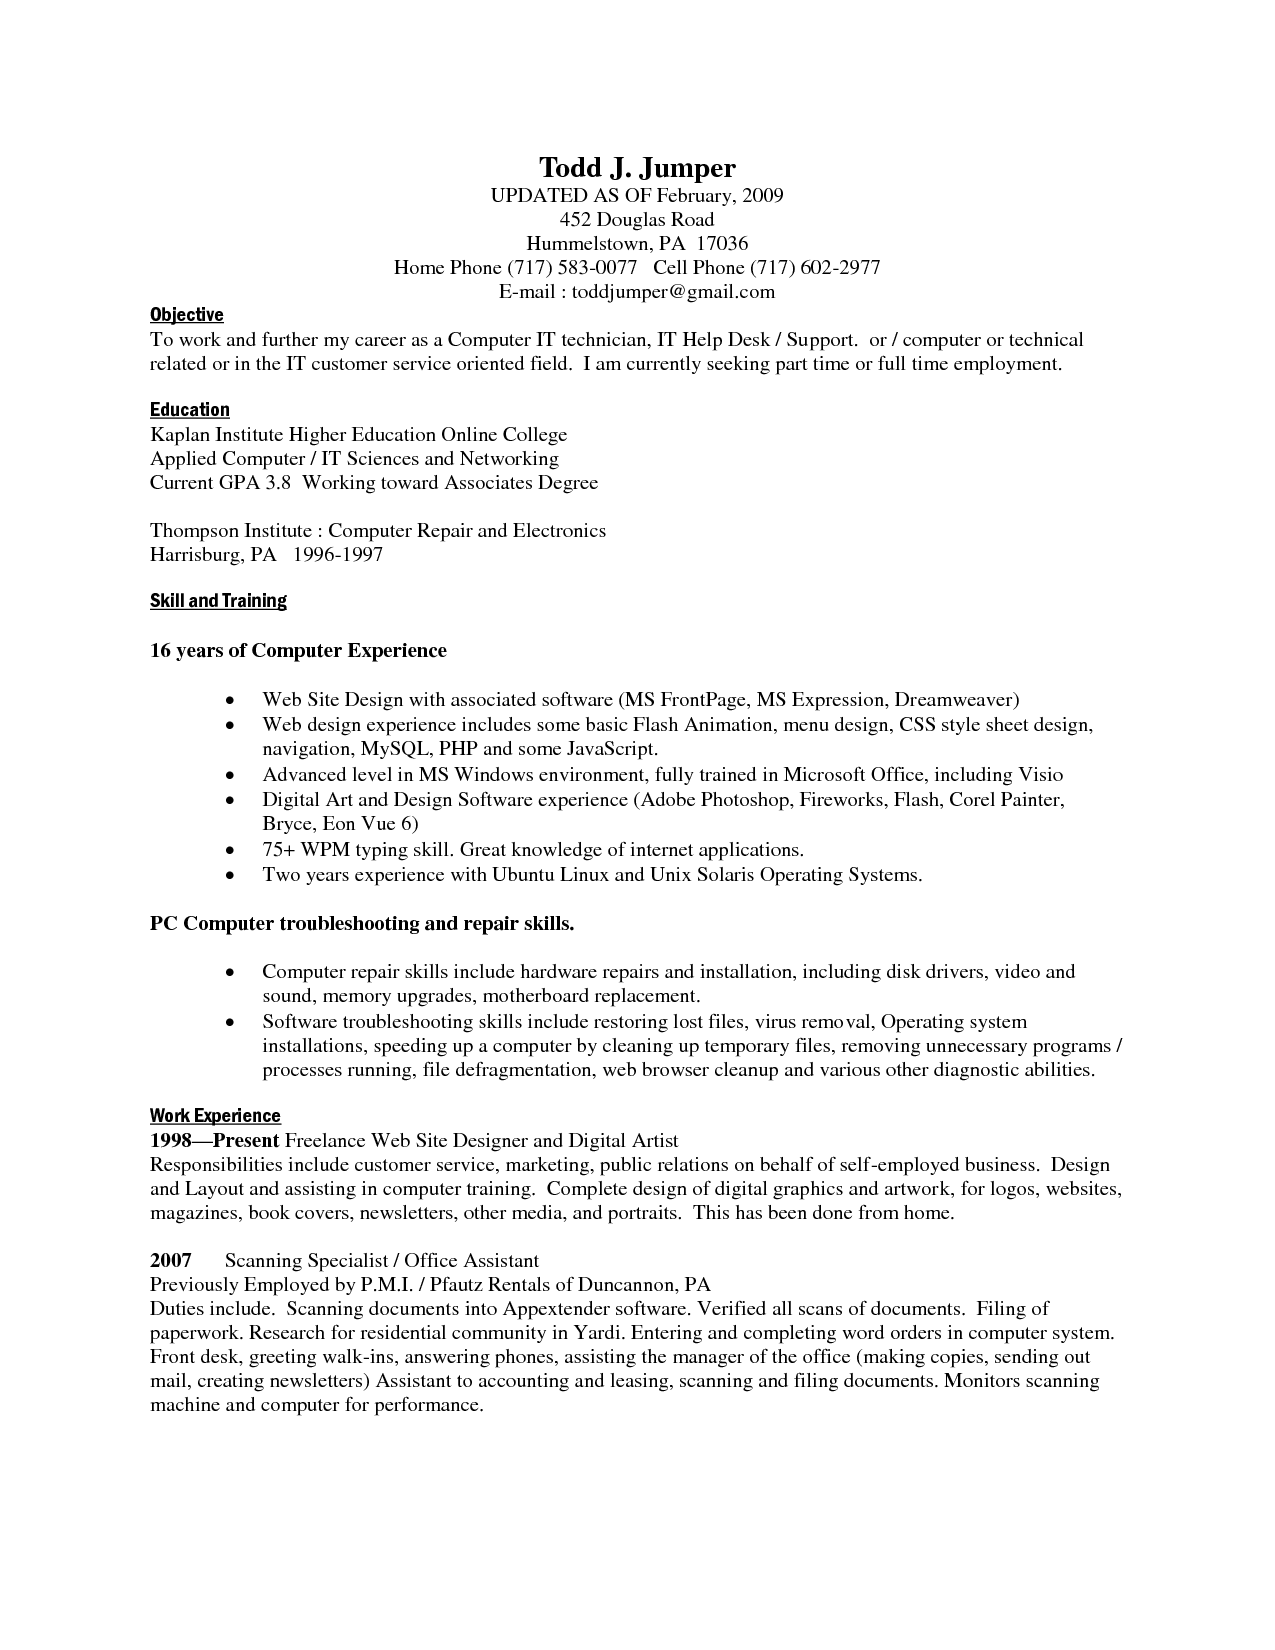 What To Put On A Resume For Skills Extraordinary Computer Skills On Sample Resume  Httpwwwresumecareer Design Ideas